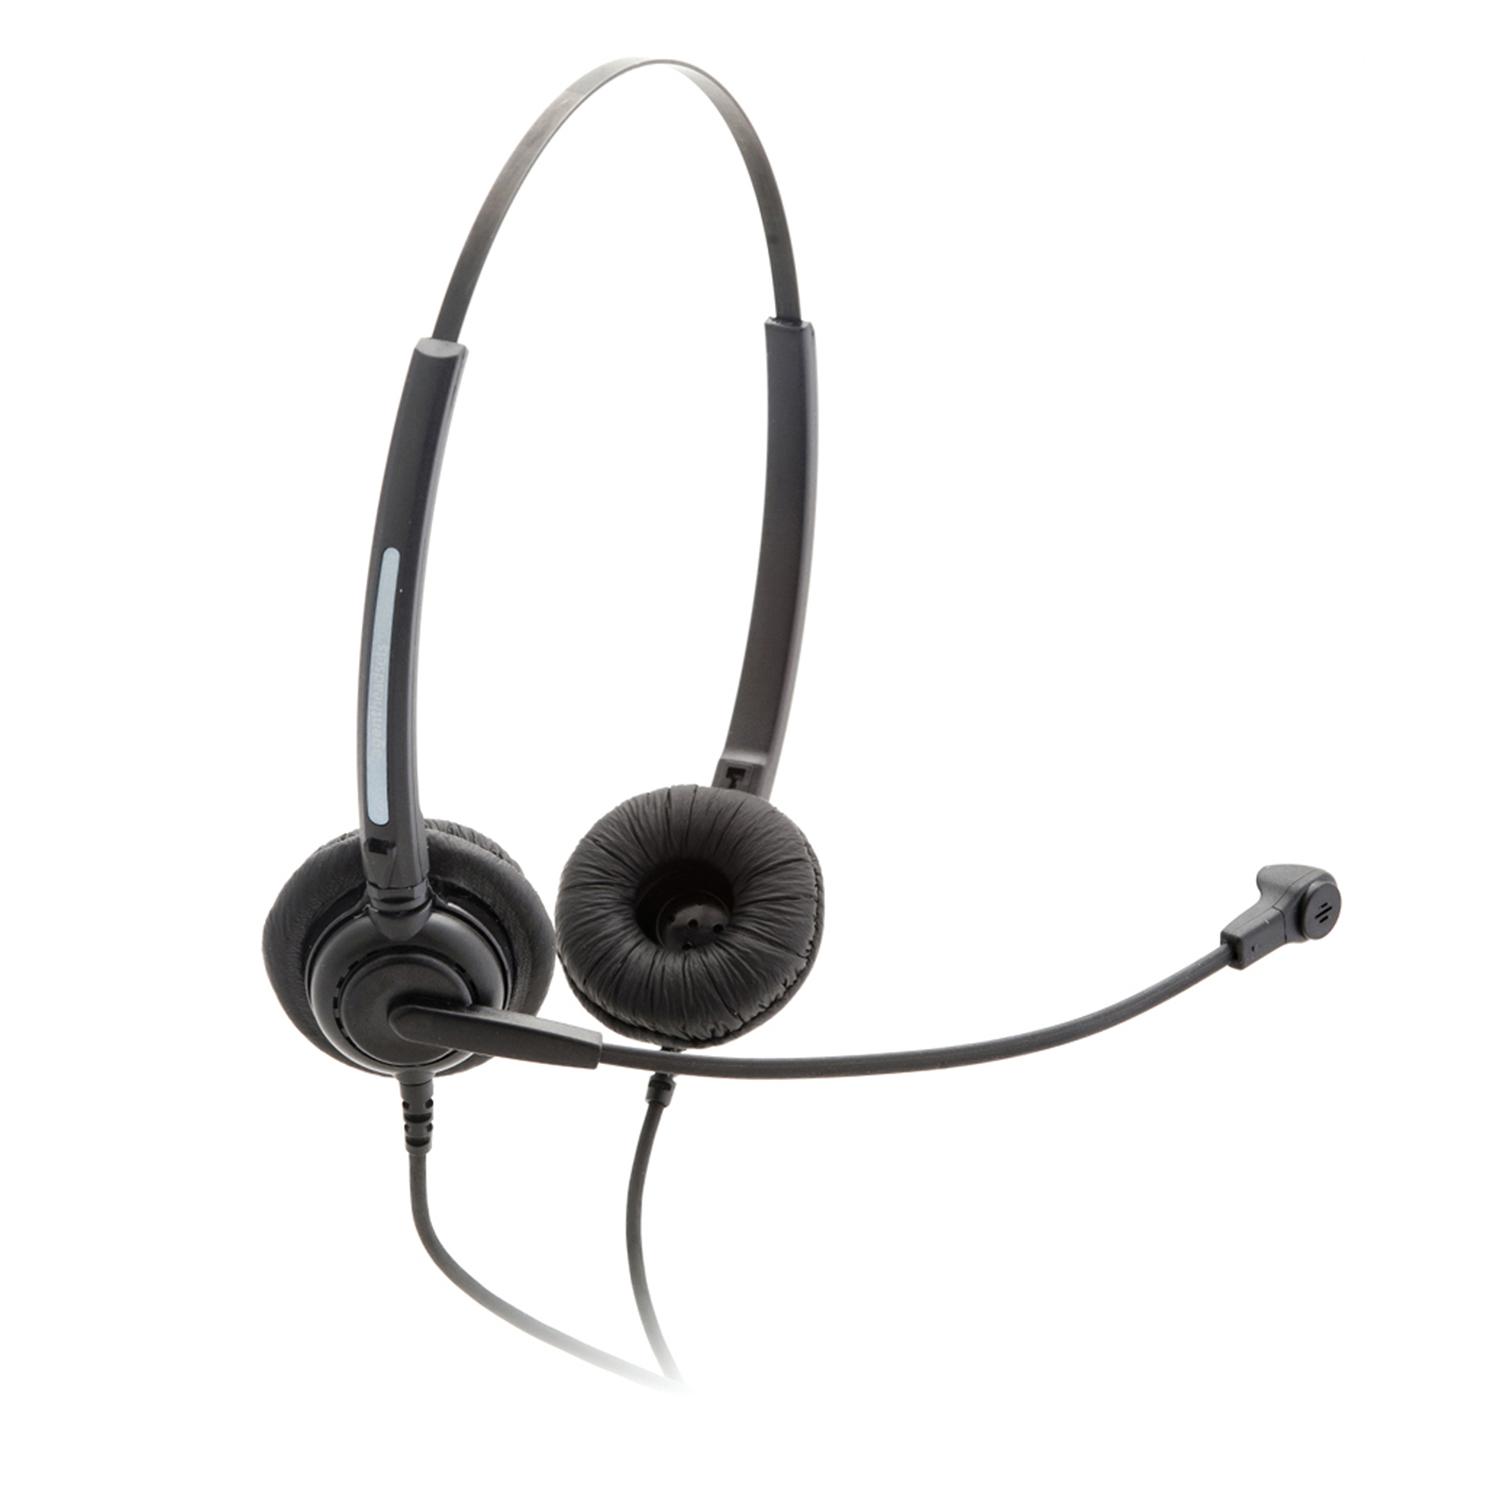 Agent 200 Binaural Noise Cancelling Headset